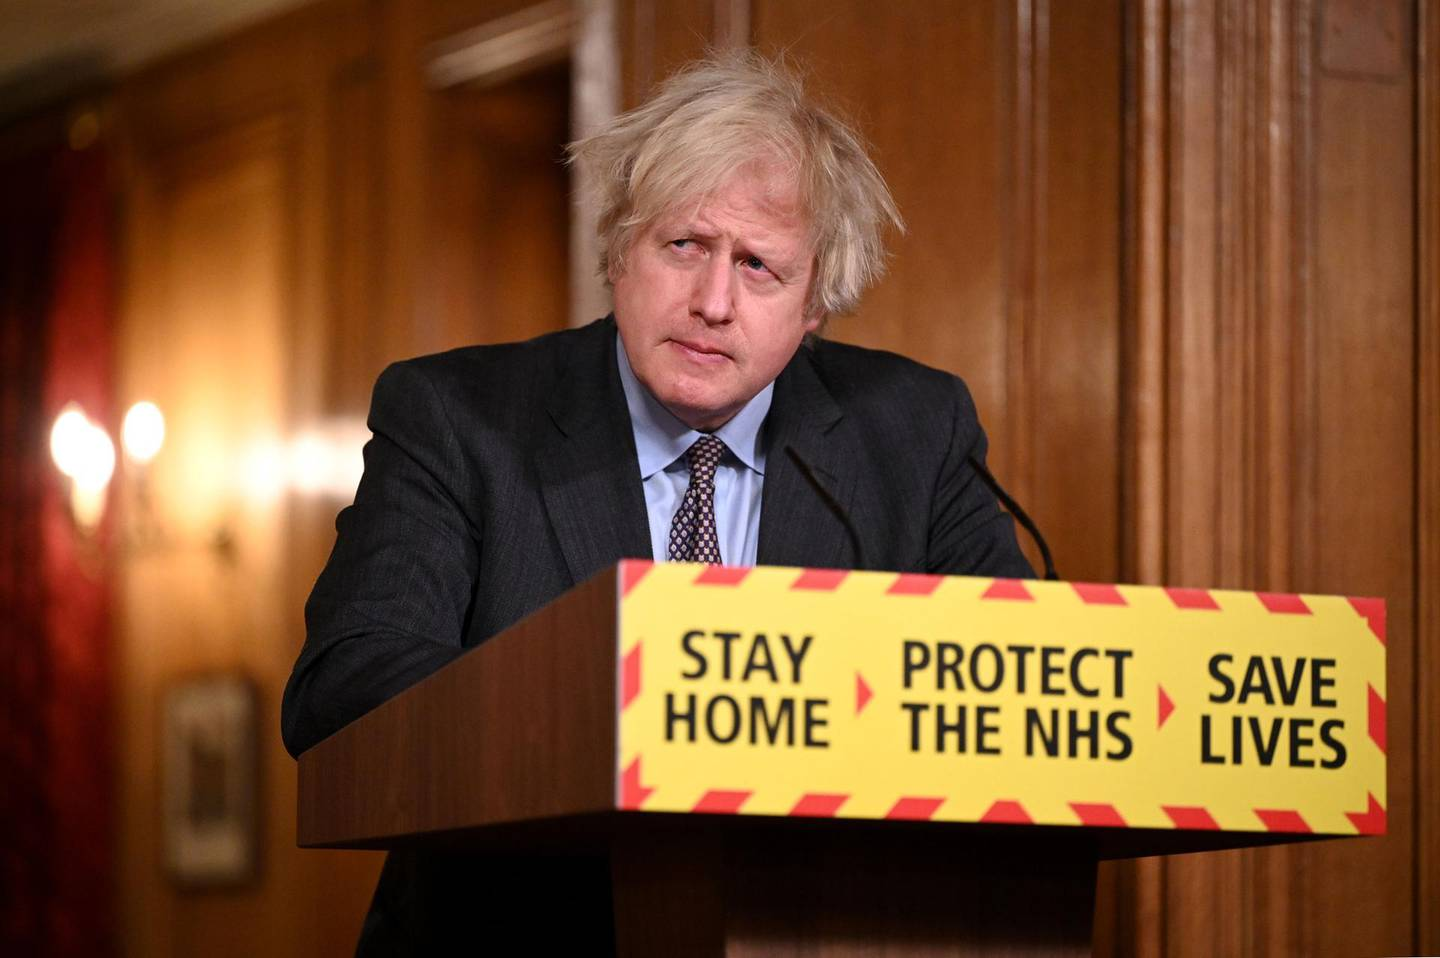 LONDON, ENGLAND - FEBRUARY 22: British Prime Minister Boris Johnson during a televised press conference at 10 Downing Street on February 22, 2021 in London, England. The prime minister announced a phased exit from the country's current lockdown measures, imposed before Christmas to curb a surge in covid-19 cases. (Photo by Leon Neal - WPA Pool/Getty Images)